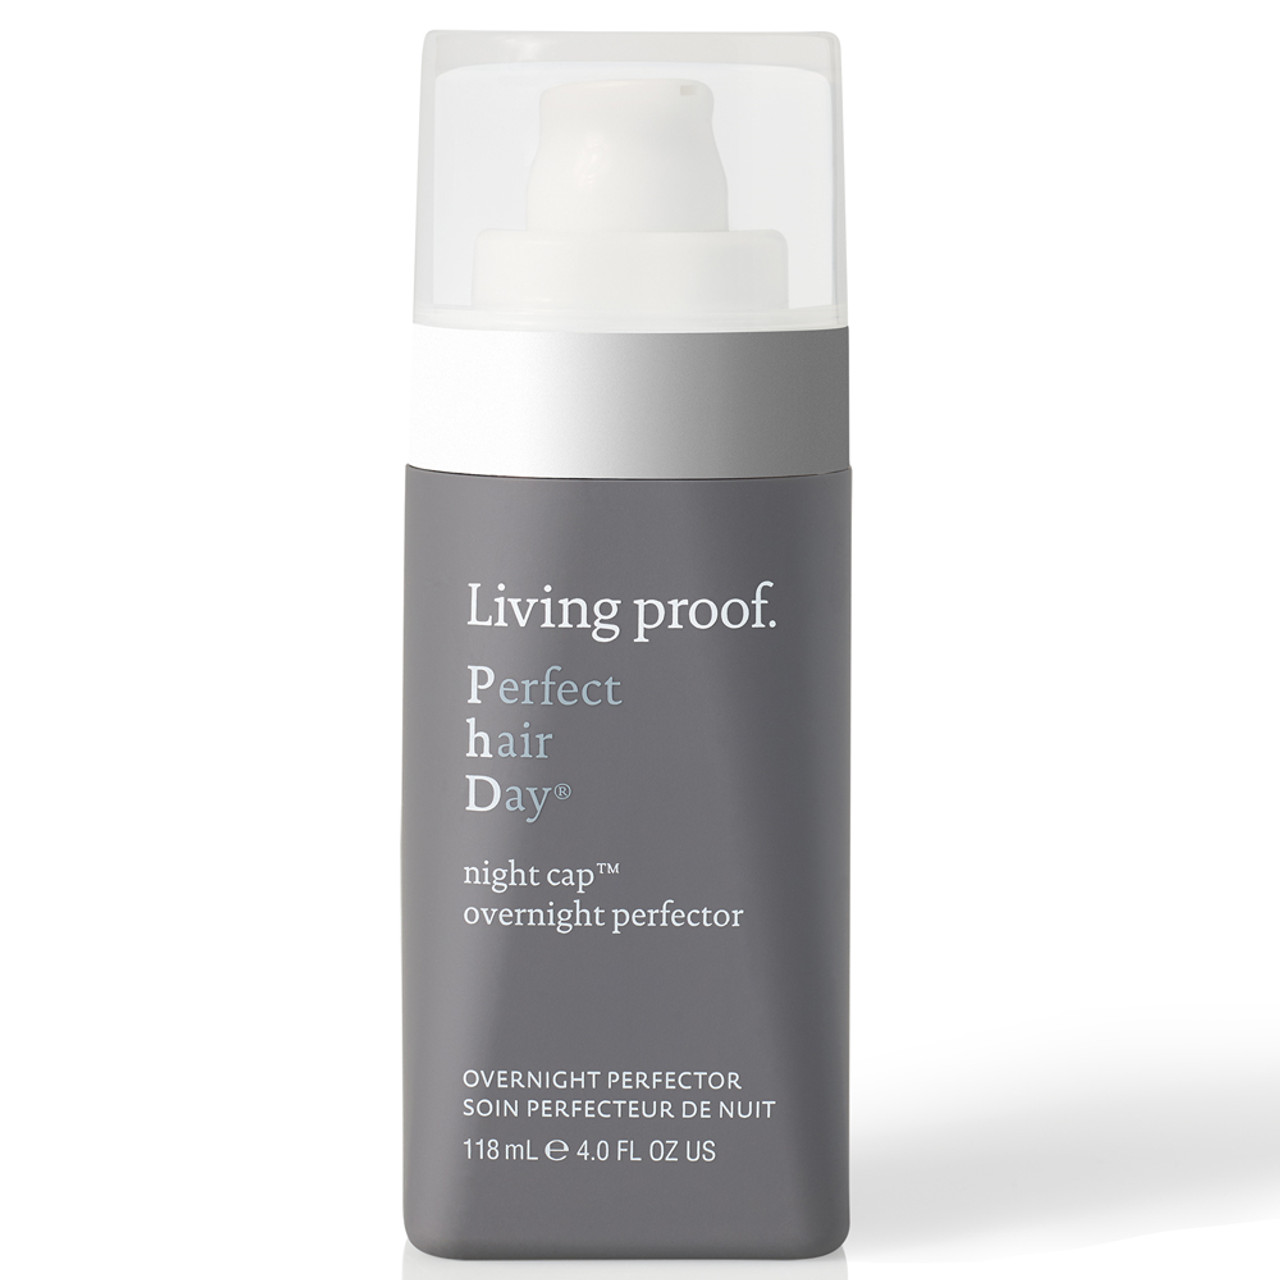 Living Proof Perfect hair Day (PhD) Night Cap Overnight Perfector